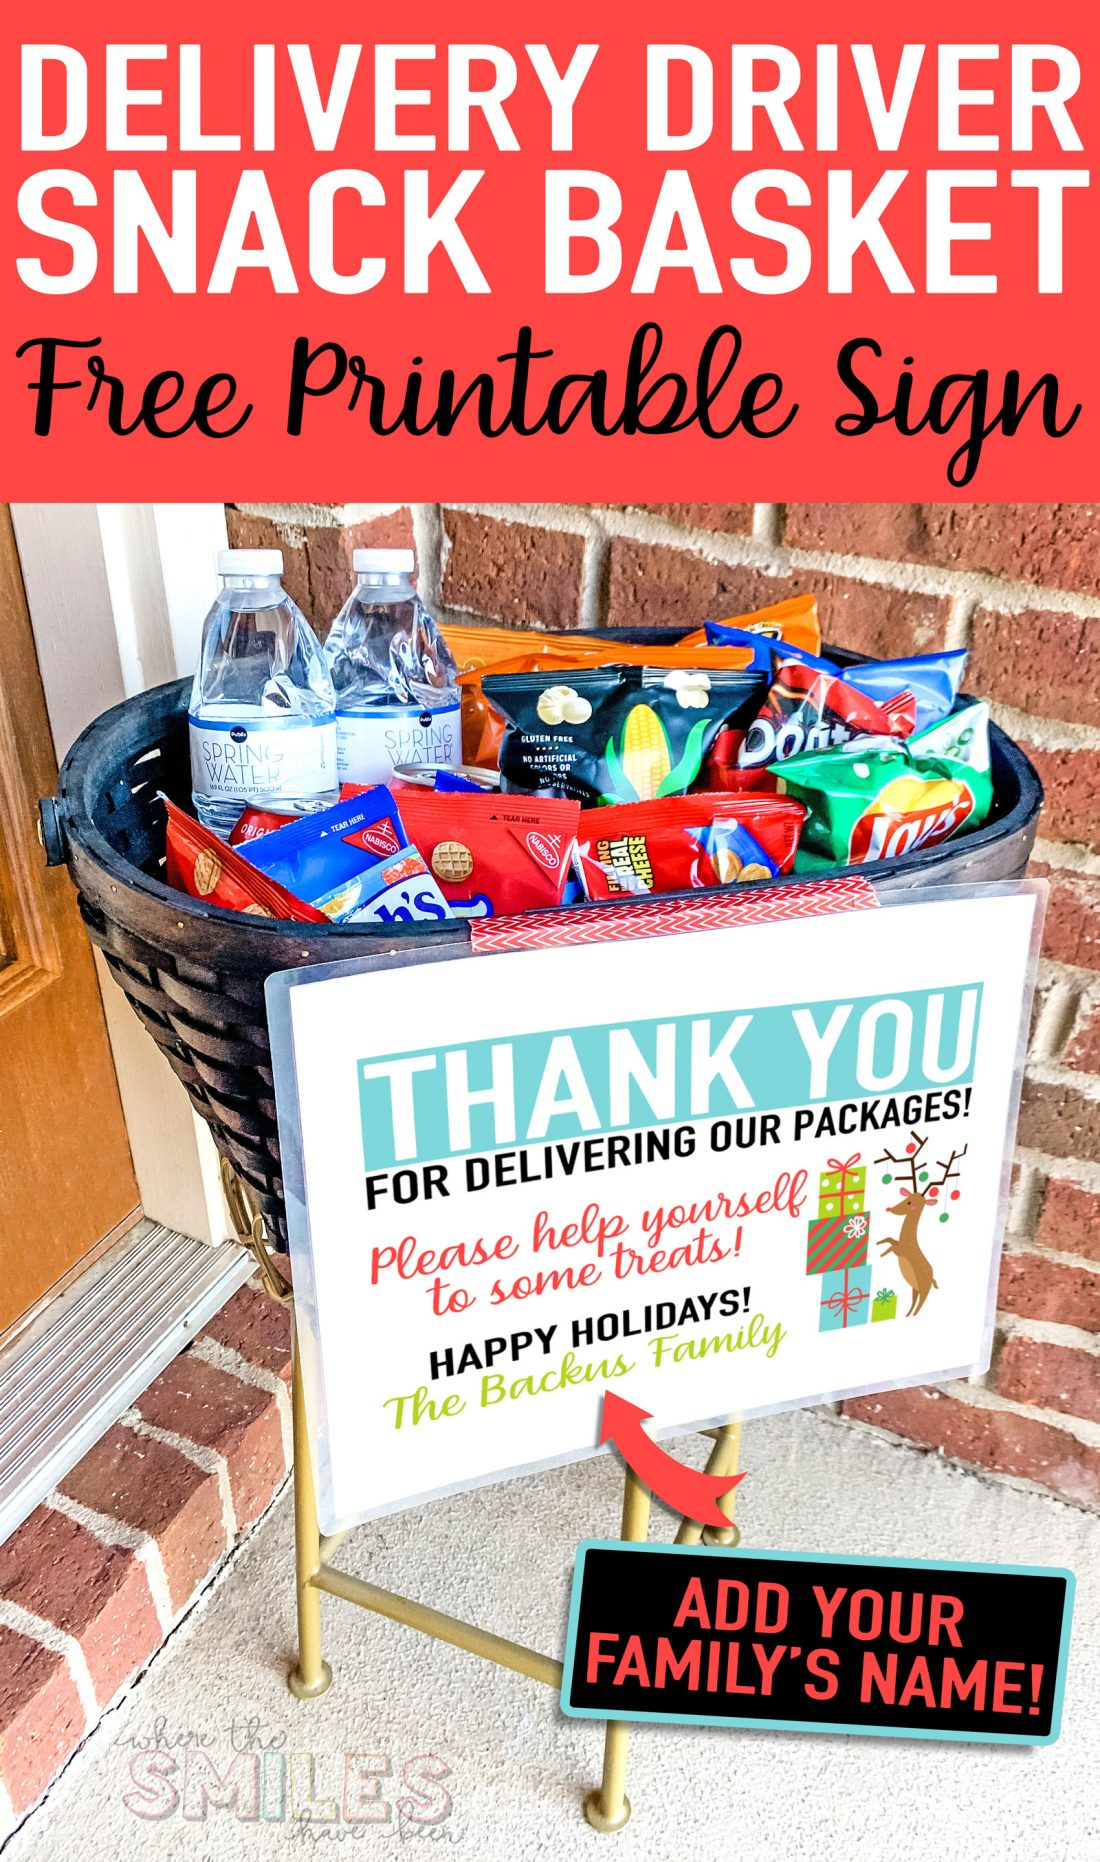 FREE Delivery Driver Snack Basket Printable Sign: Add Your Family's Name!